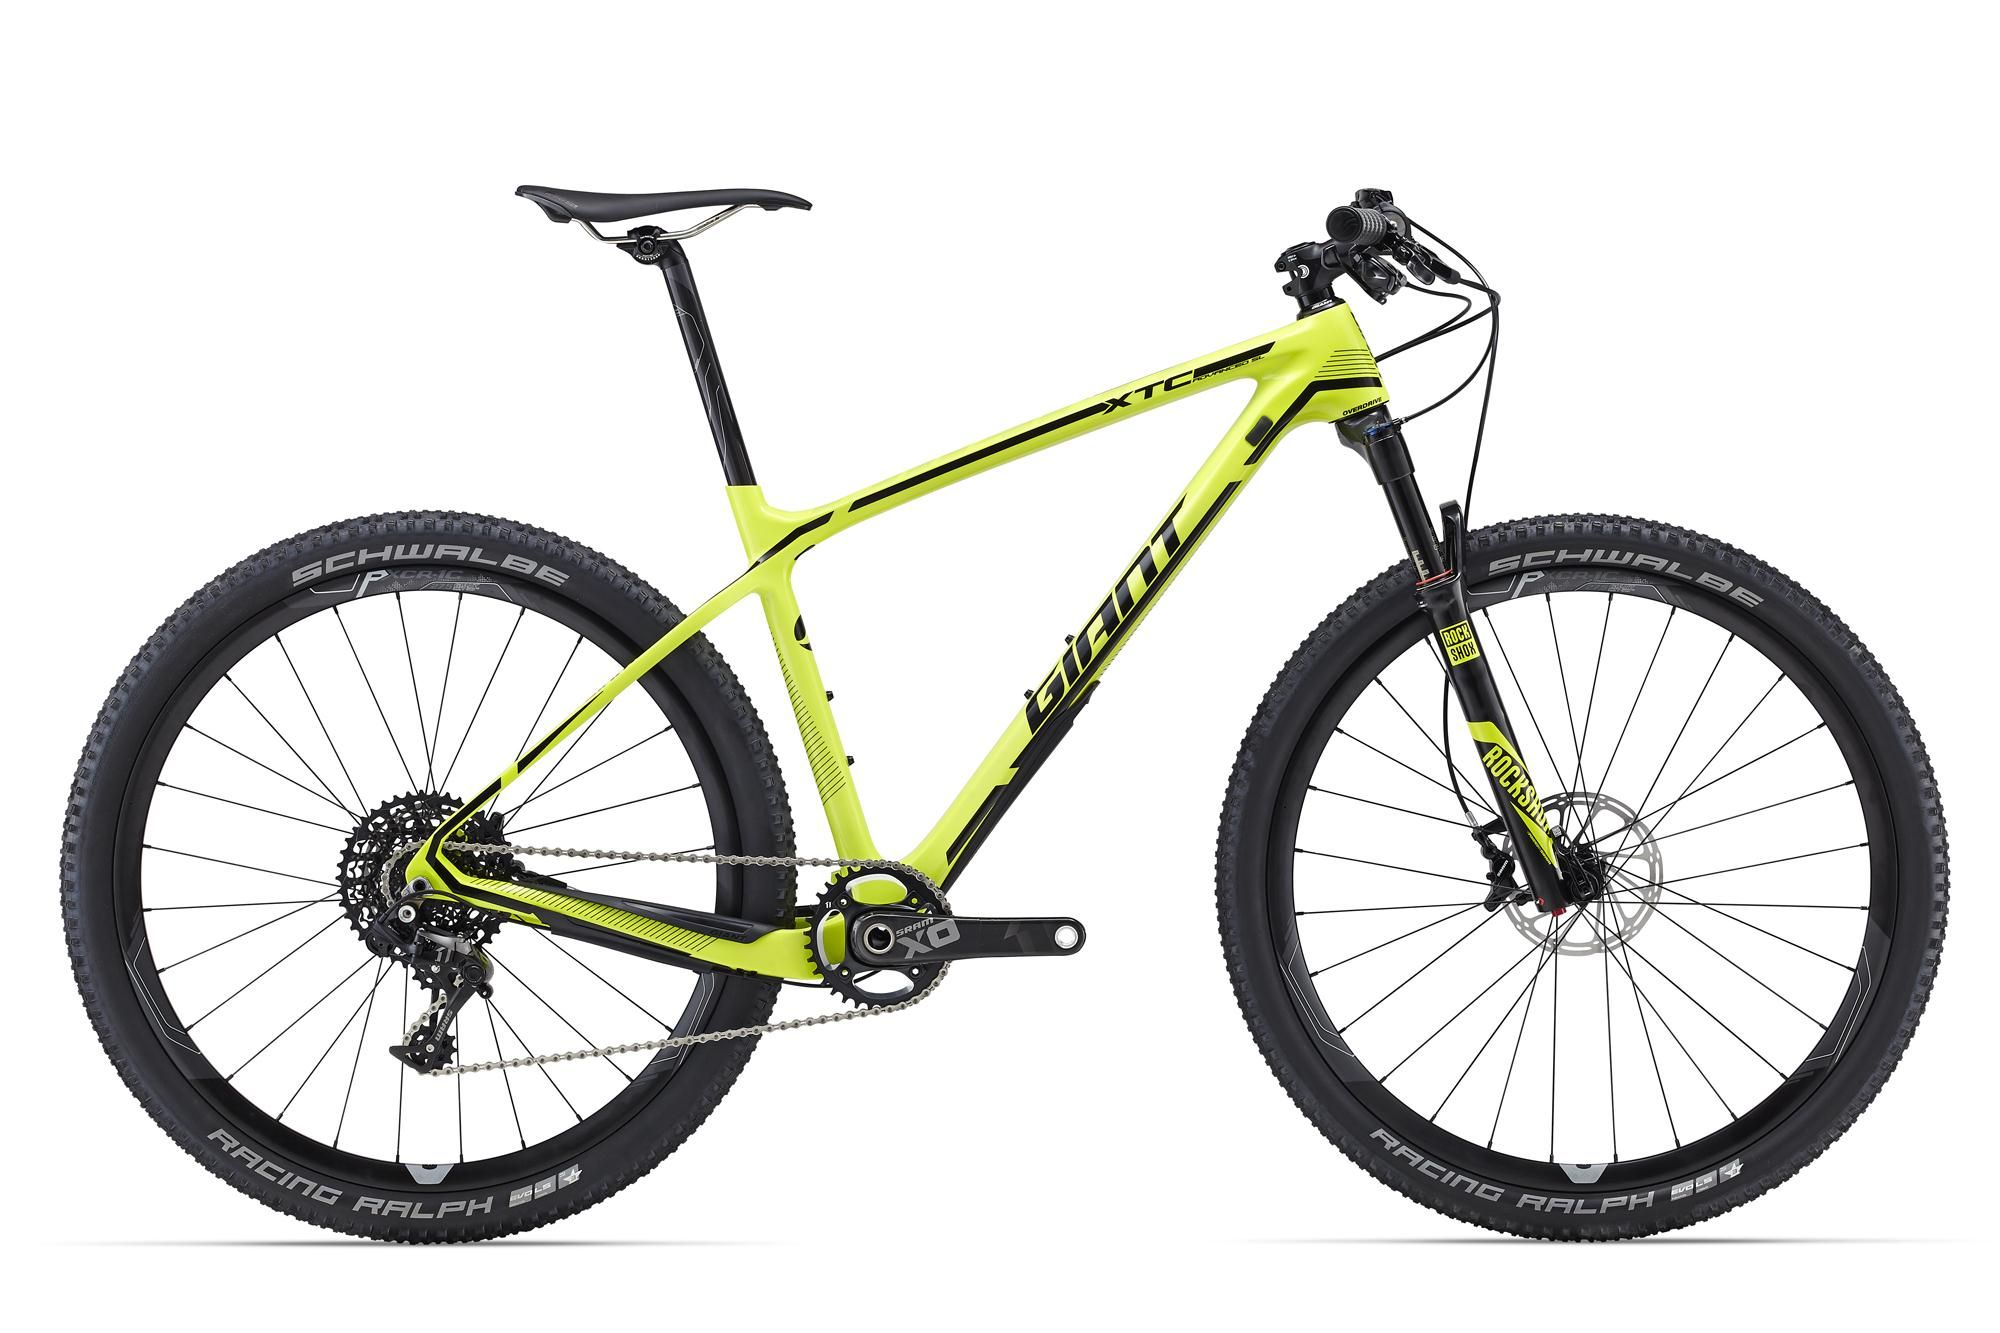 Велосипед Giant XtC Advanced SL 27.5 1 2016 велосипед giant tcr advanced sl 2 2017